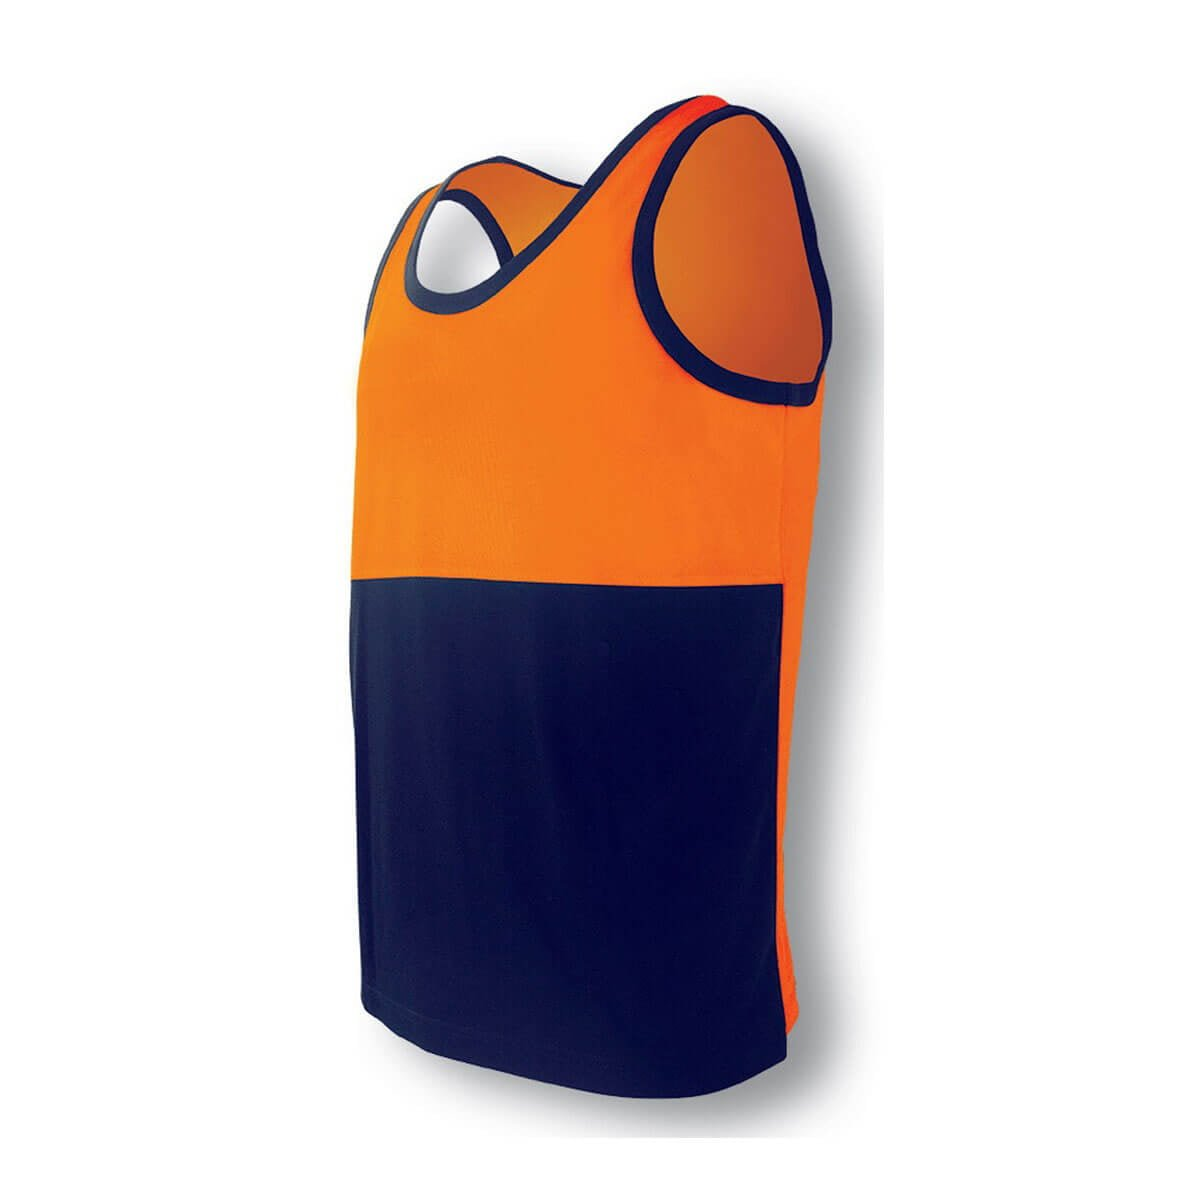 HI-VIS POLYFACE/COTTON BACK SINGLET-Orange / Navy